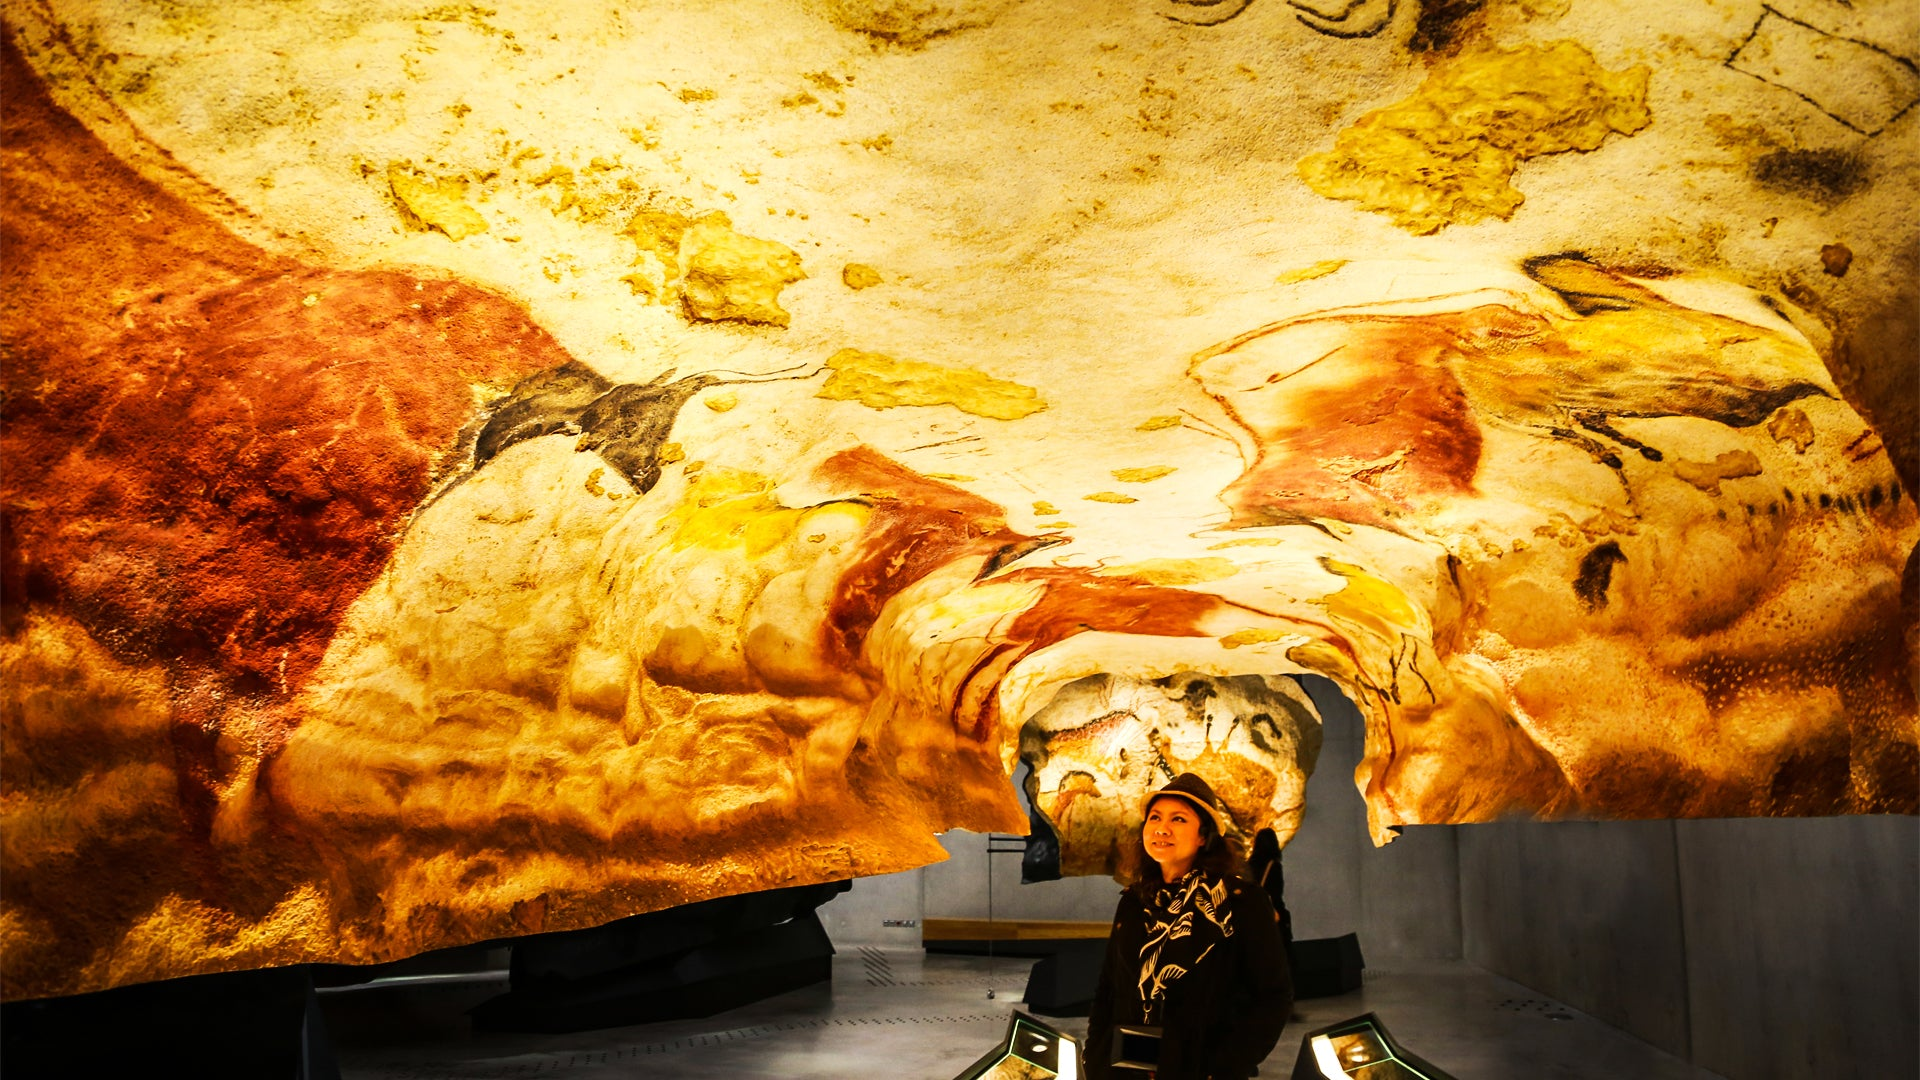 The Lascaux Caves, France